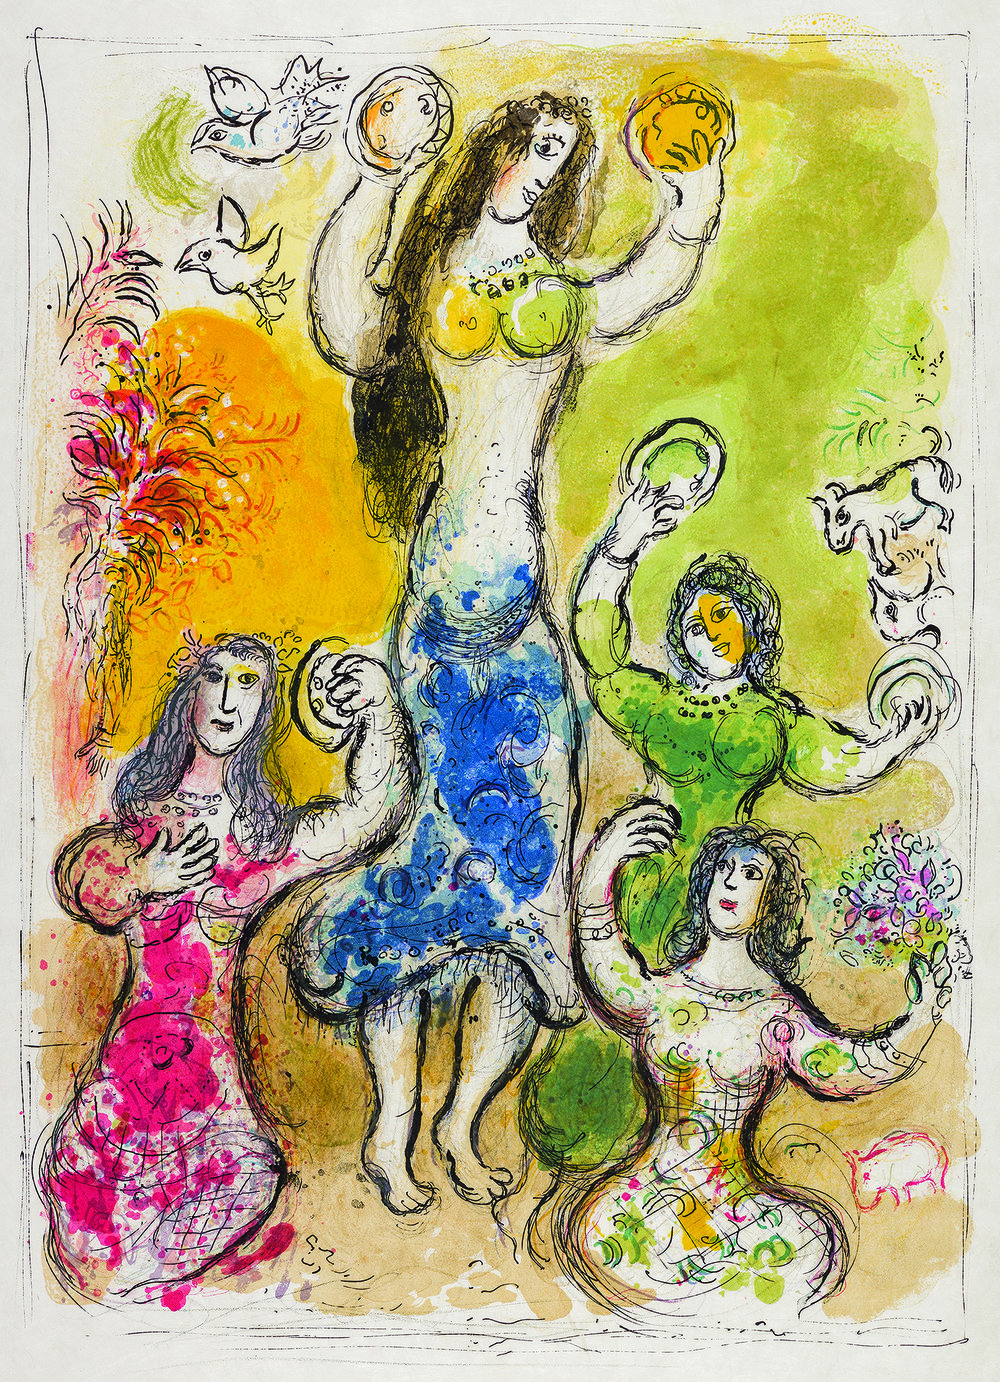 """And Miriam the prophetesse, sister of Aaron, tooke a timbrell in her hande, and all the women came out after her with timbrells and dances."" ""The Story of the Exodus"" lithographs by Marc Chagall. Paris, New York: Leon Amiel, 1966. 50 x 37 cm, 285 ex."